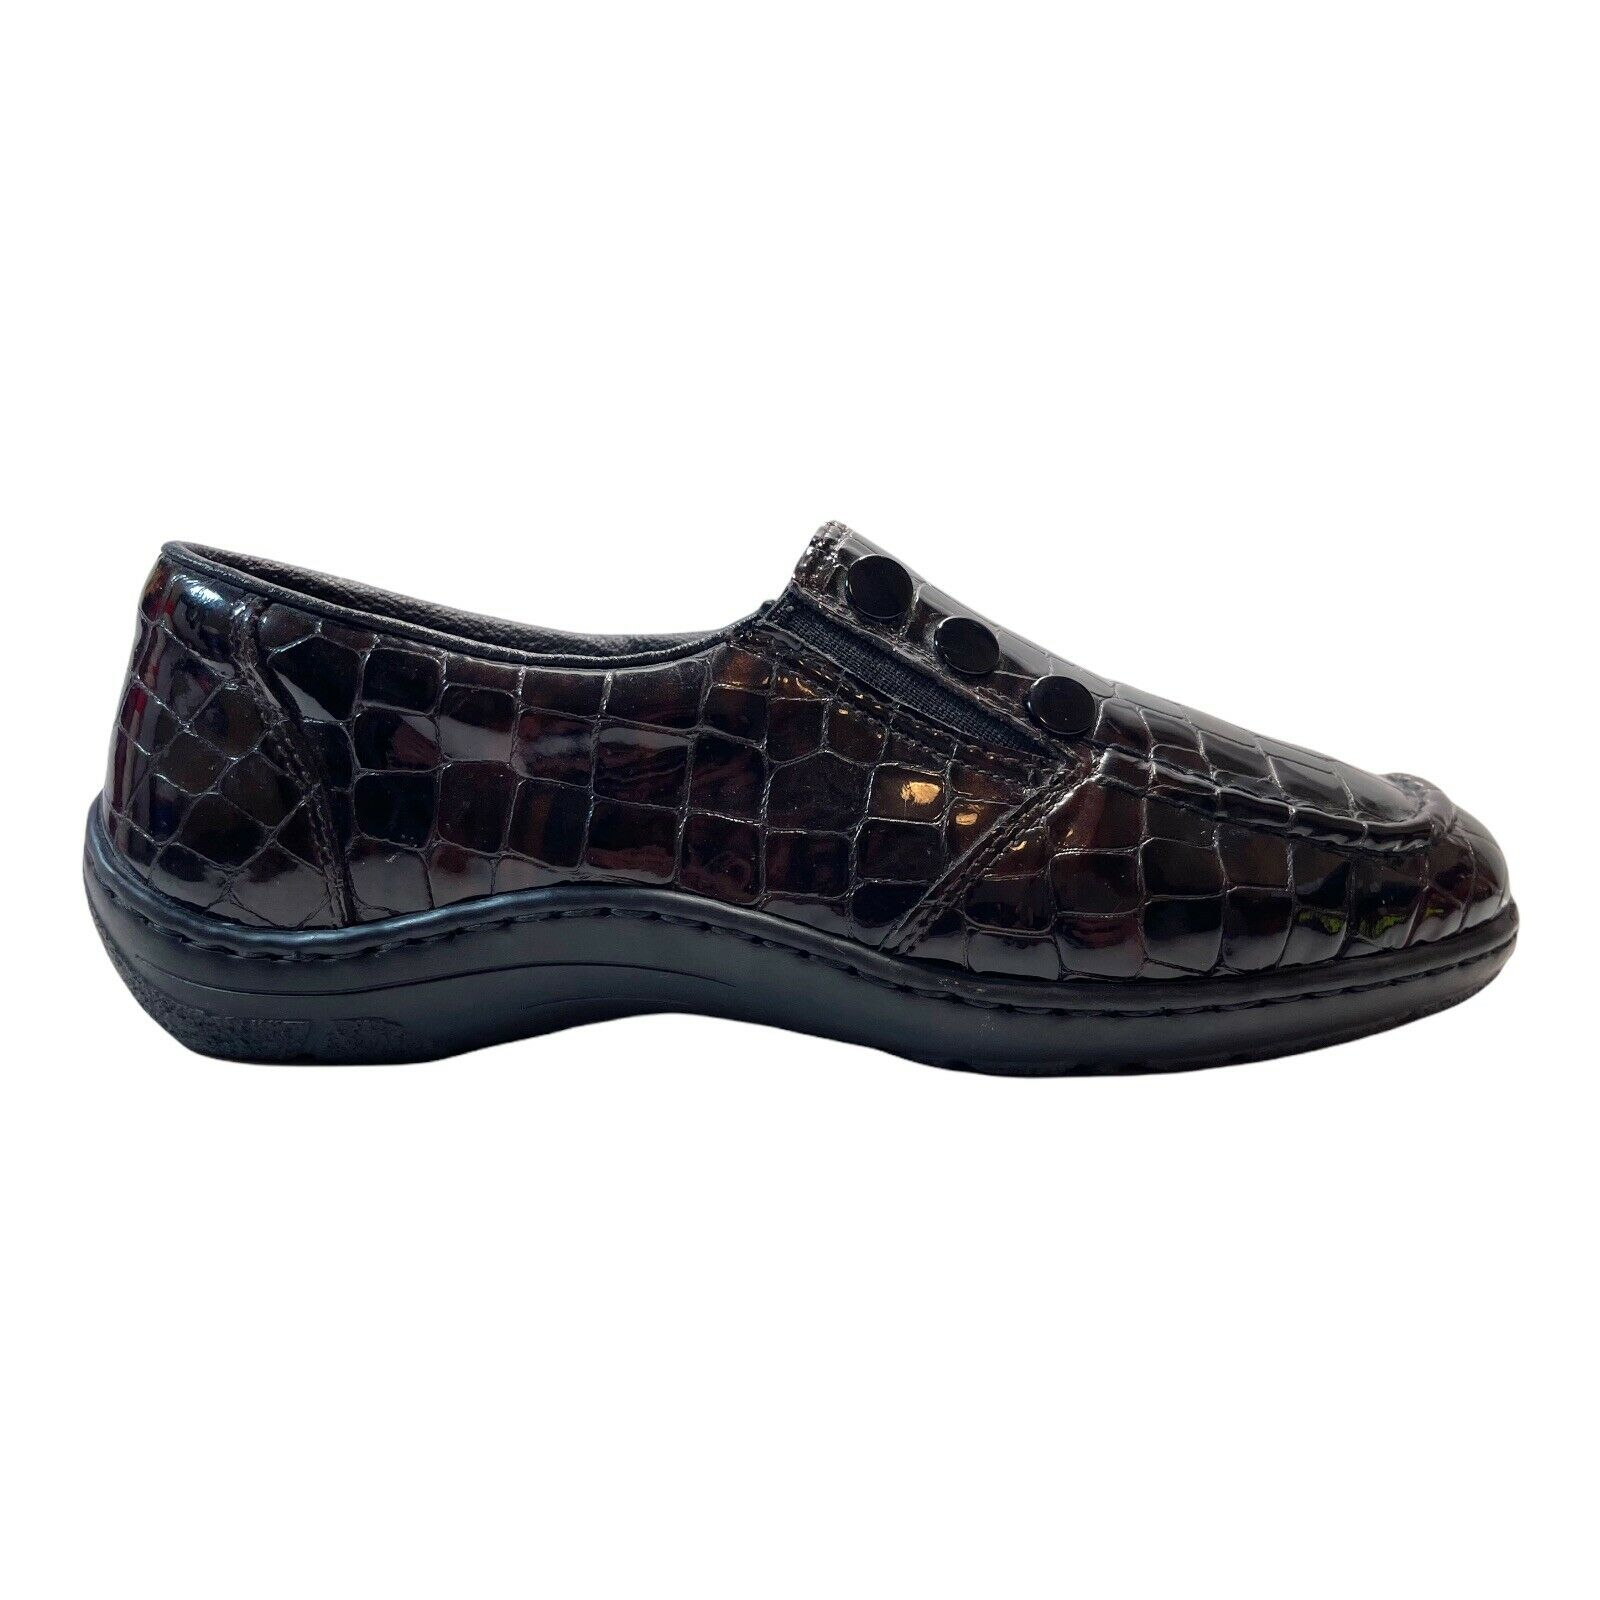 Rieker Womens Shoes Brown Croc Leather Antistress Comfort Loafers Size 6.5